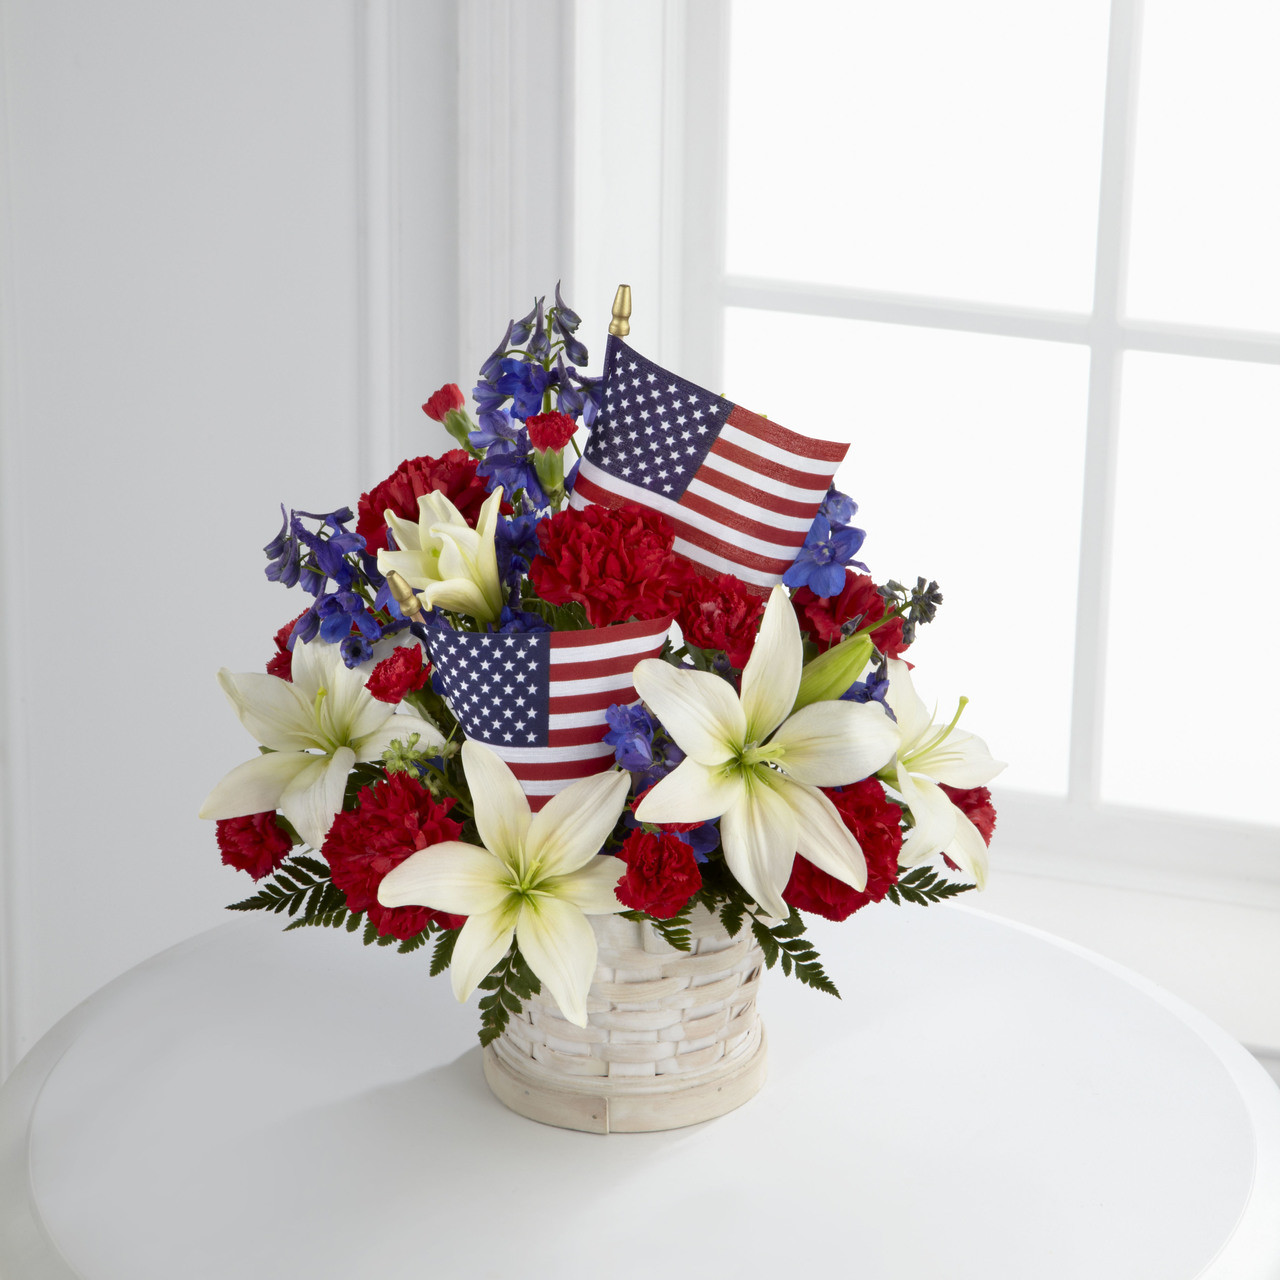 Theamerican Glory Bouquet Bursts With Patriotic Pride And Heartfelt